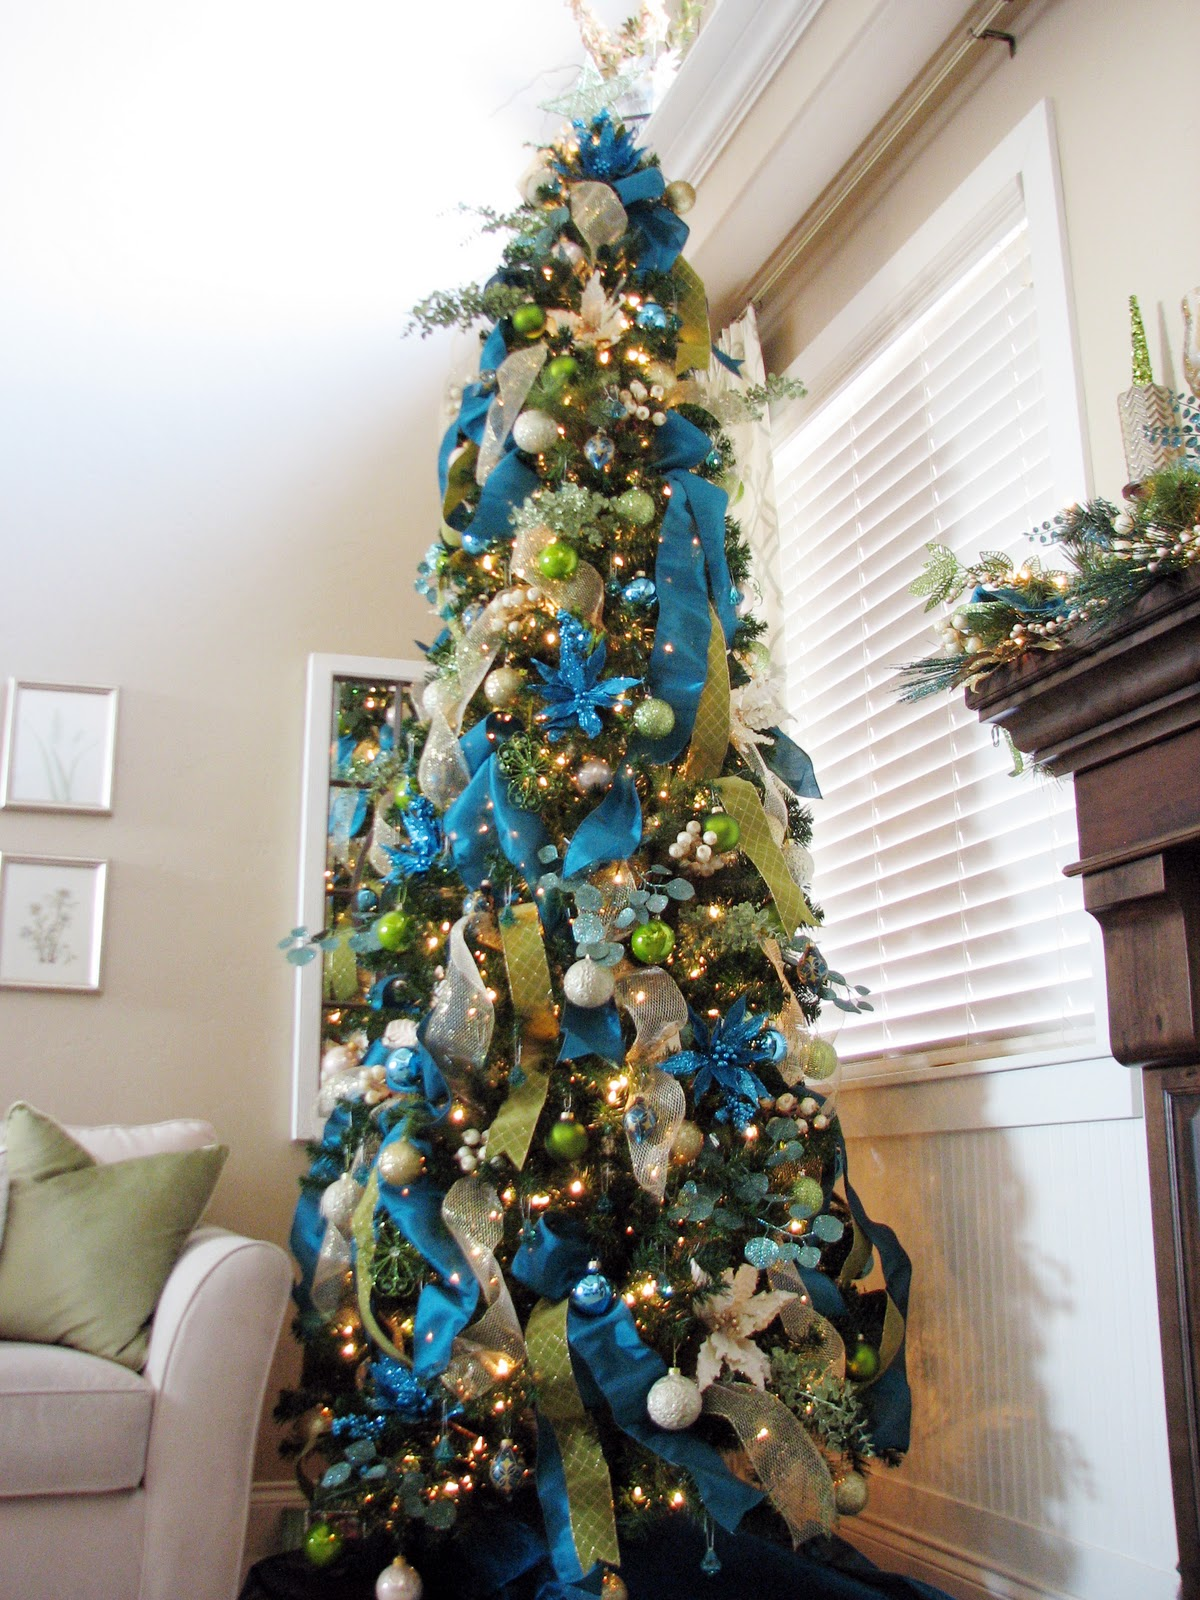 Christmas Tree Decorating With Ribbon Ideas : More christmas decor the tree sita montgomery interiors